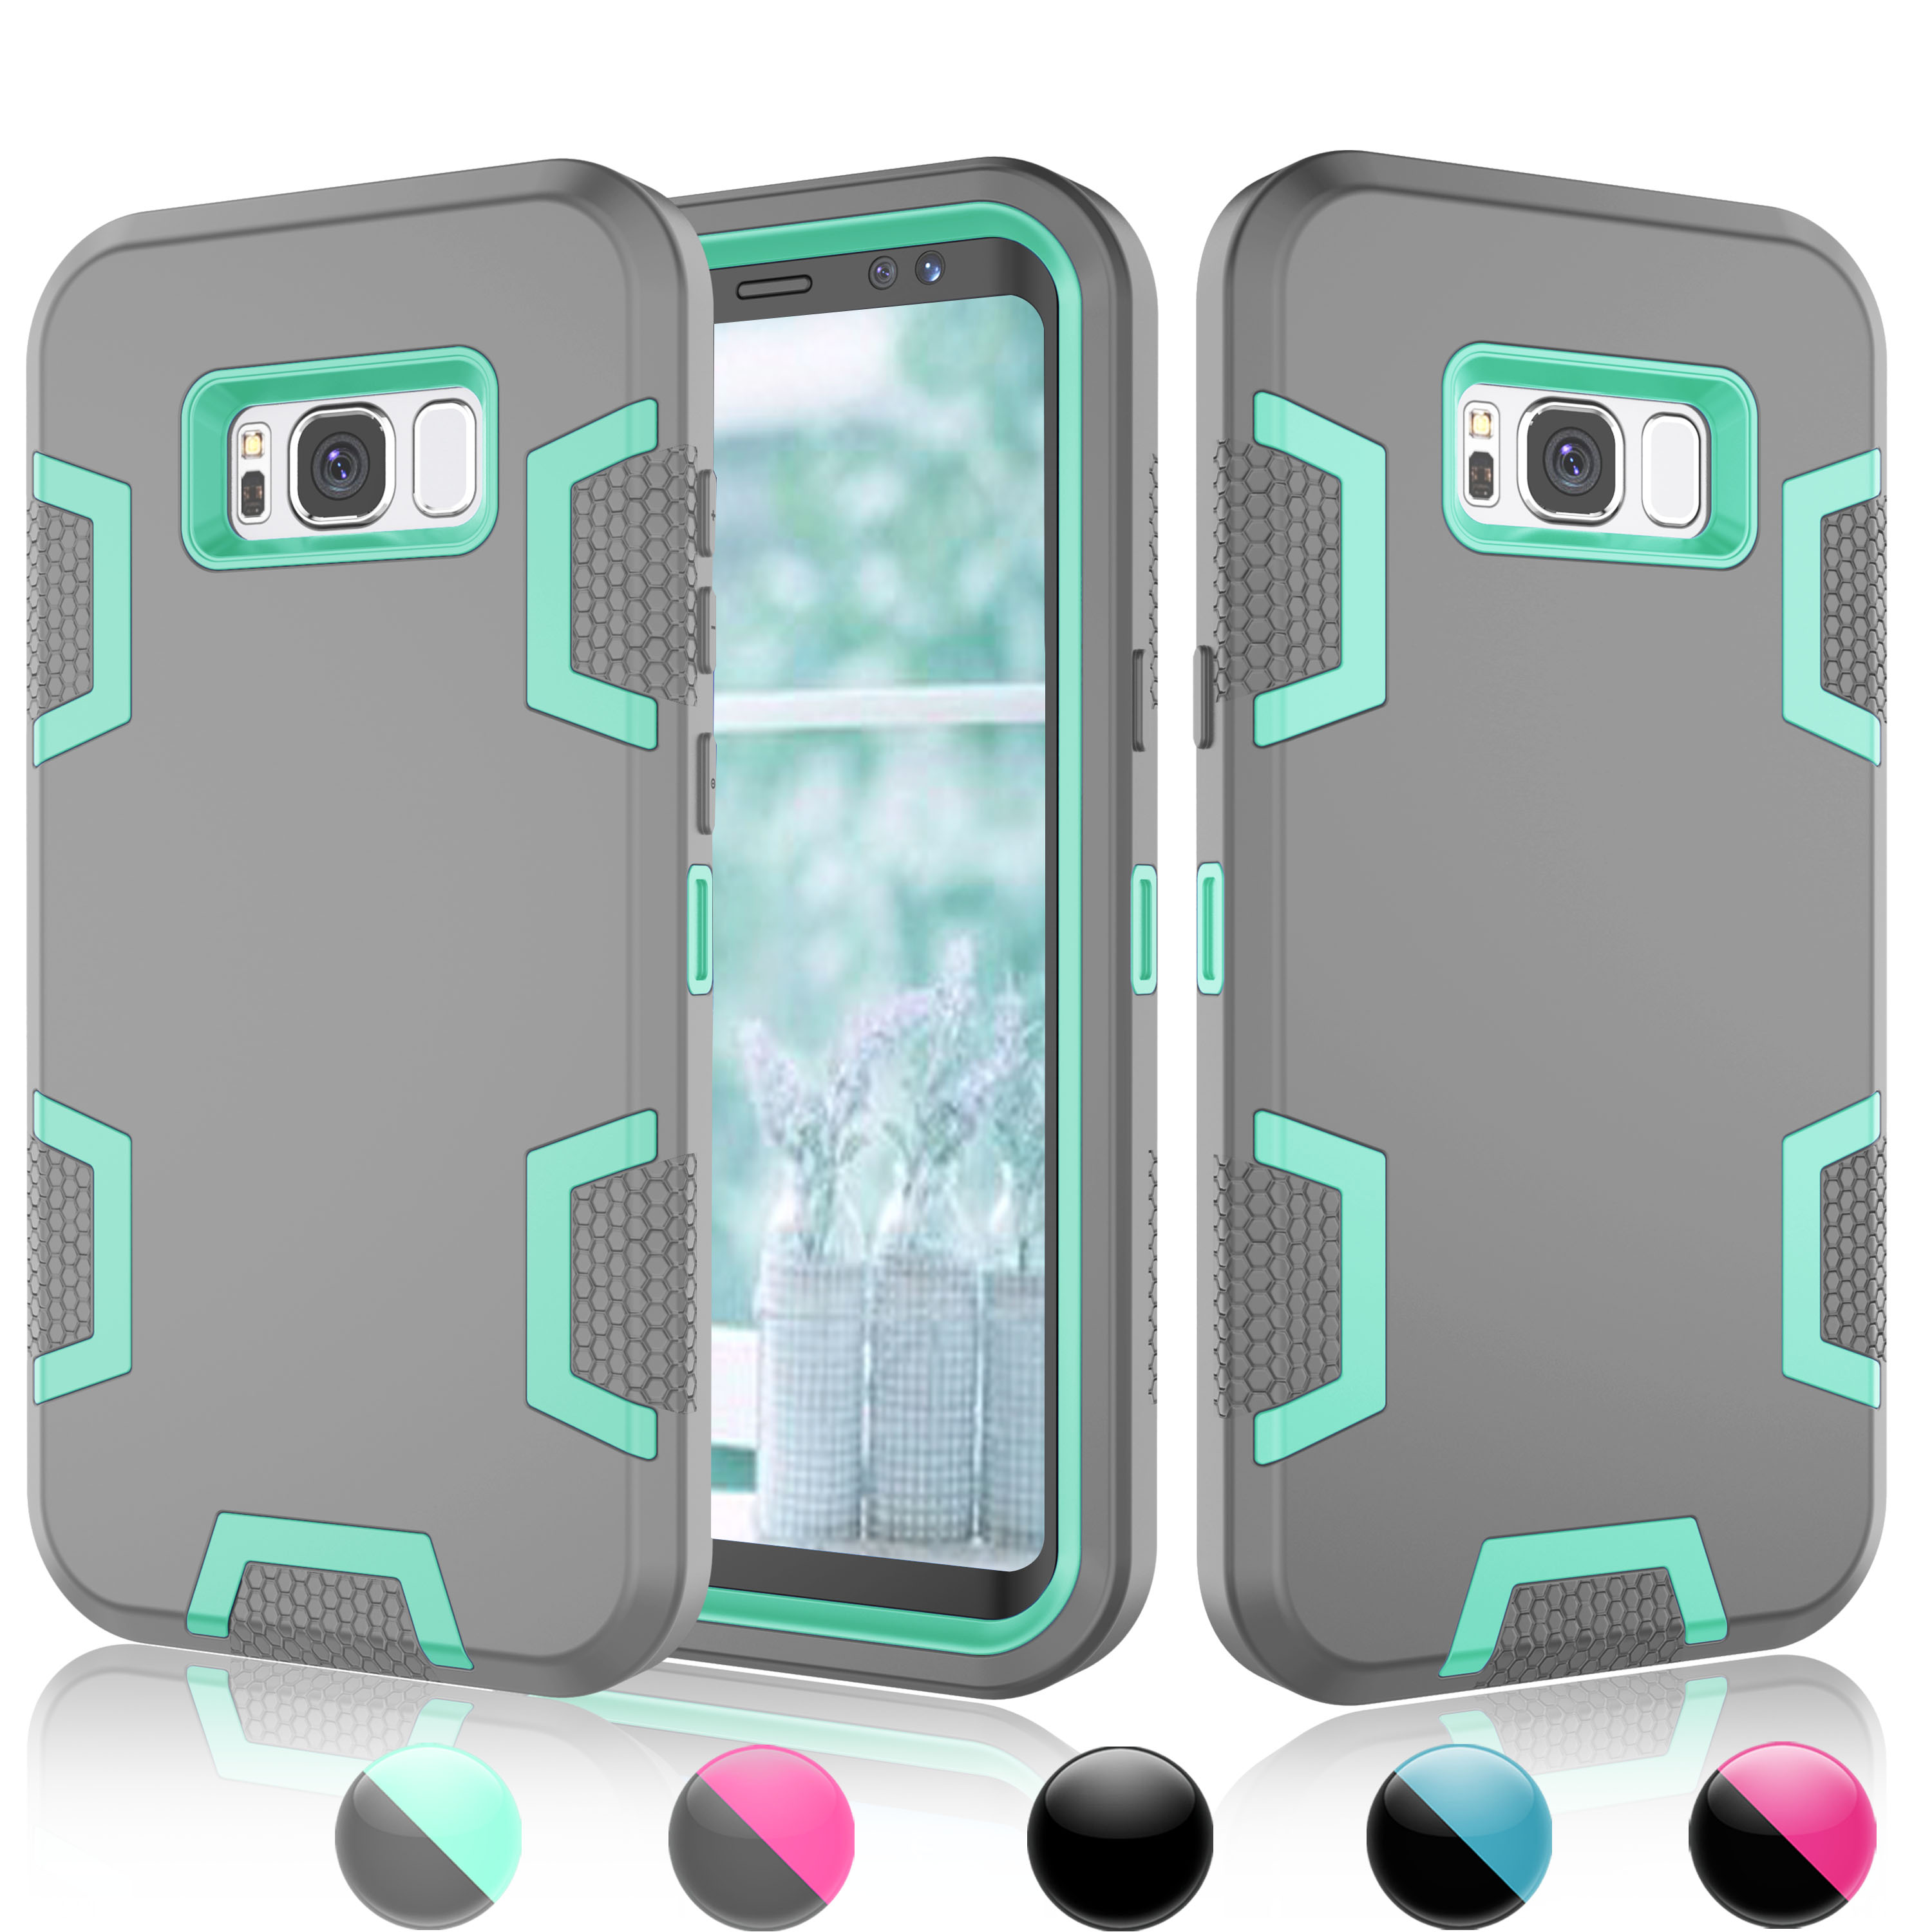 Cases For Samsung Galaxy S8 Plus / S8, Njjex [Turquoise] Hybrid Shock Absorbing Shock Dust Dirt Proof Defender Rugged Full Body Hard Cases Shell